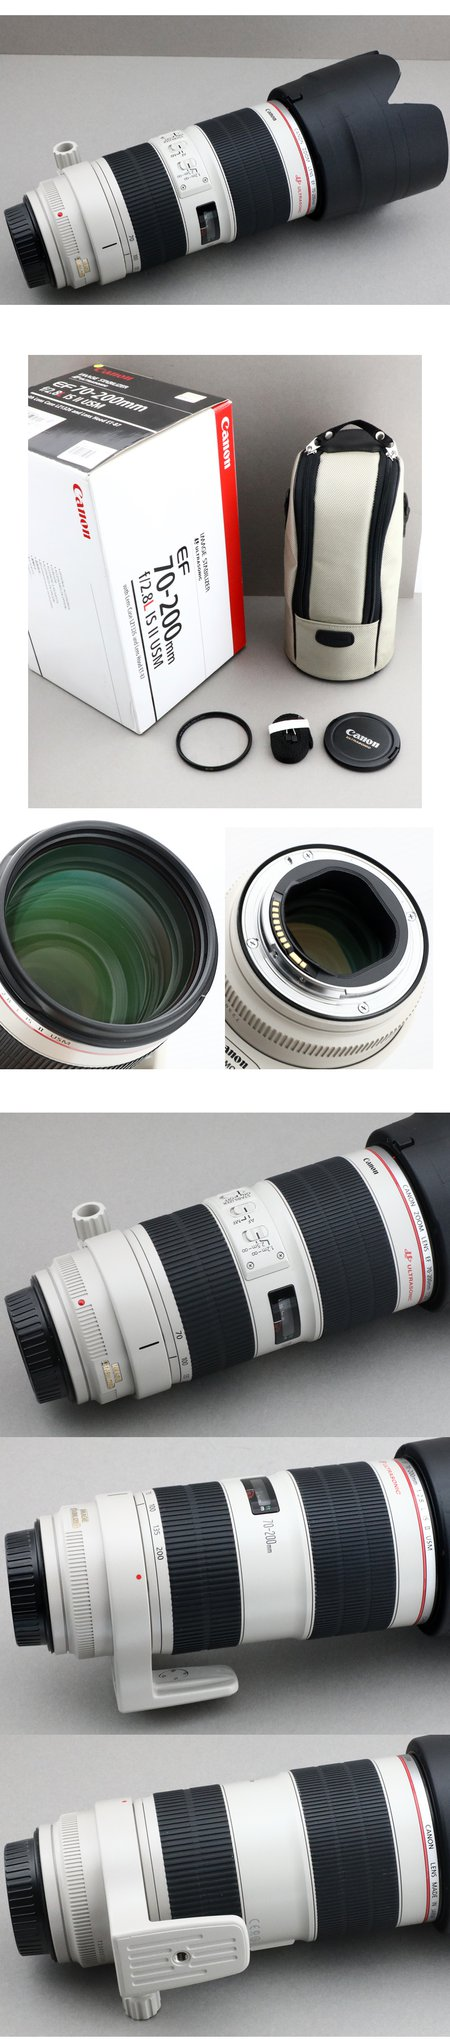 Canon EF 70-200mm f 2.8 IS II  防手震二代